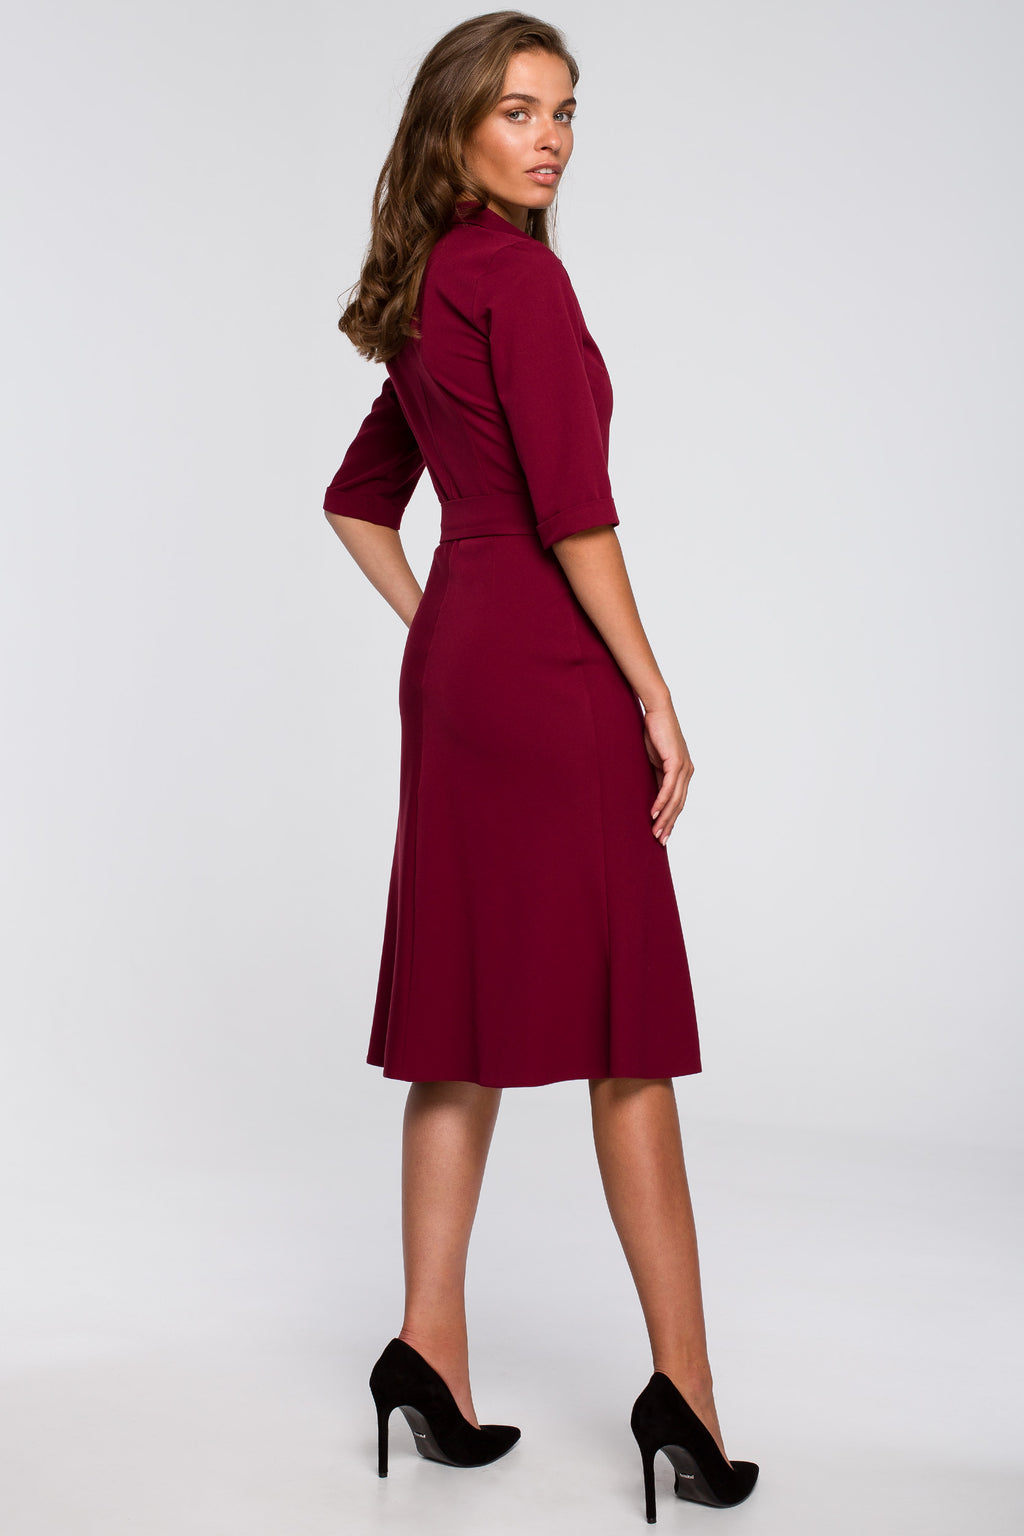 Midi Maroon Collar Dress With A Buckle - So Chic Boutique